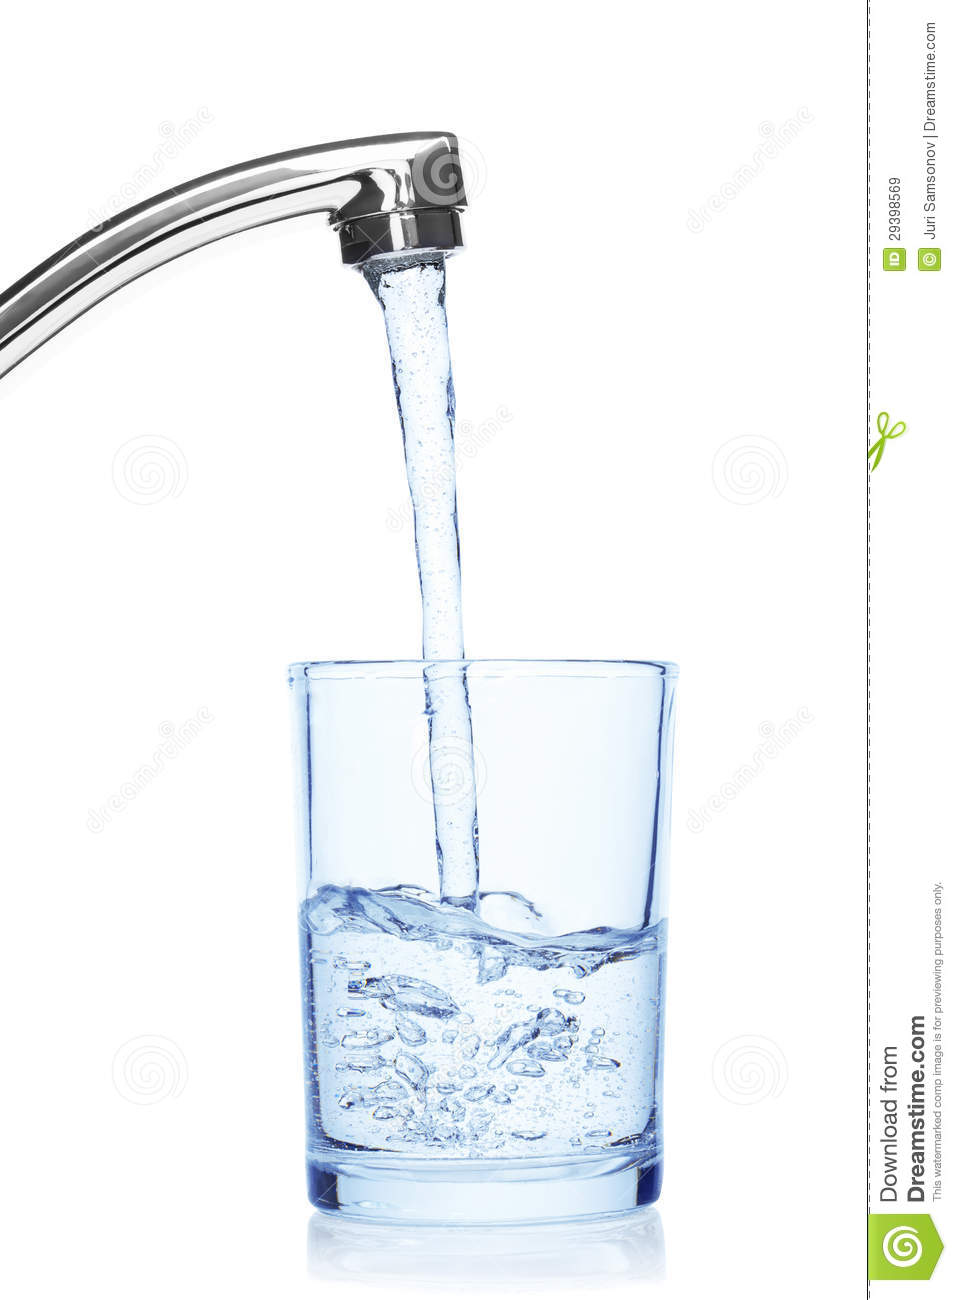 Glass Filled With Drinking Water From Tap Stock Image Image Of Stainless Closeup 29398569